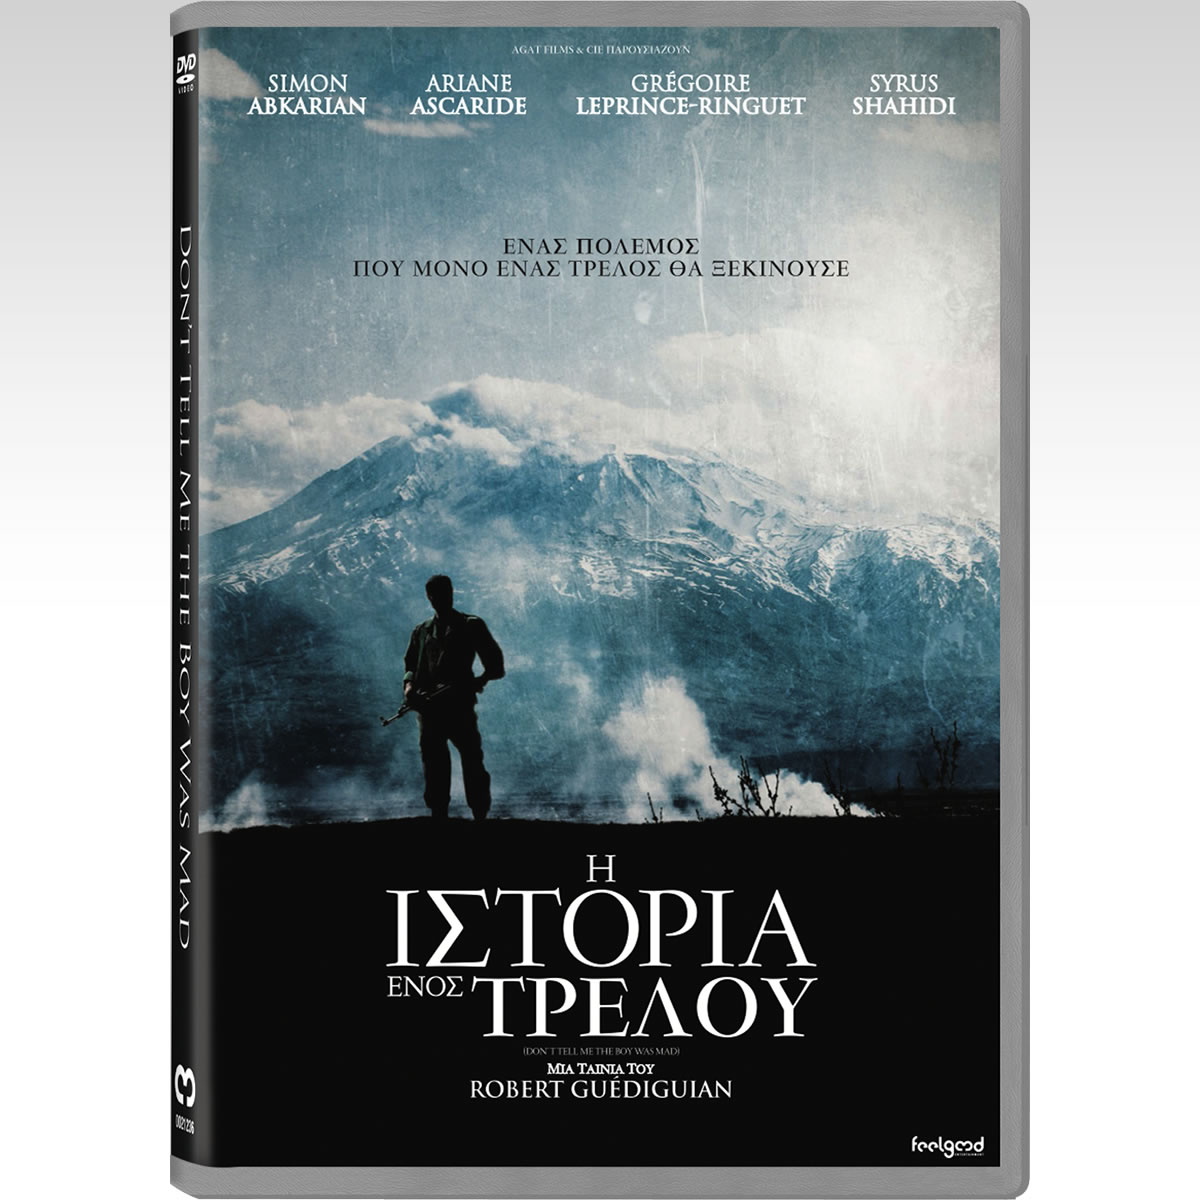 DON'T TELL ME THE BOY WAS MAD - Η ΙΣΤΟΡΙΑ ΕΝΟΣ ΤΡΕΛΟΥ (DVD)